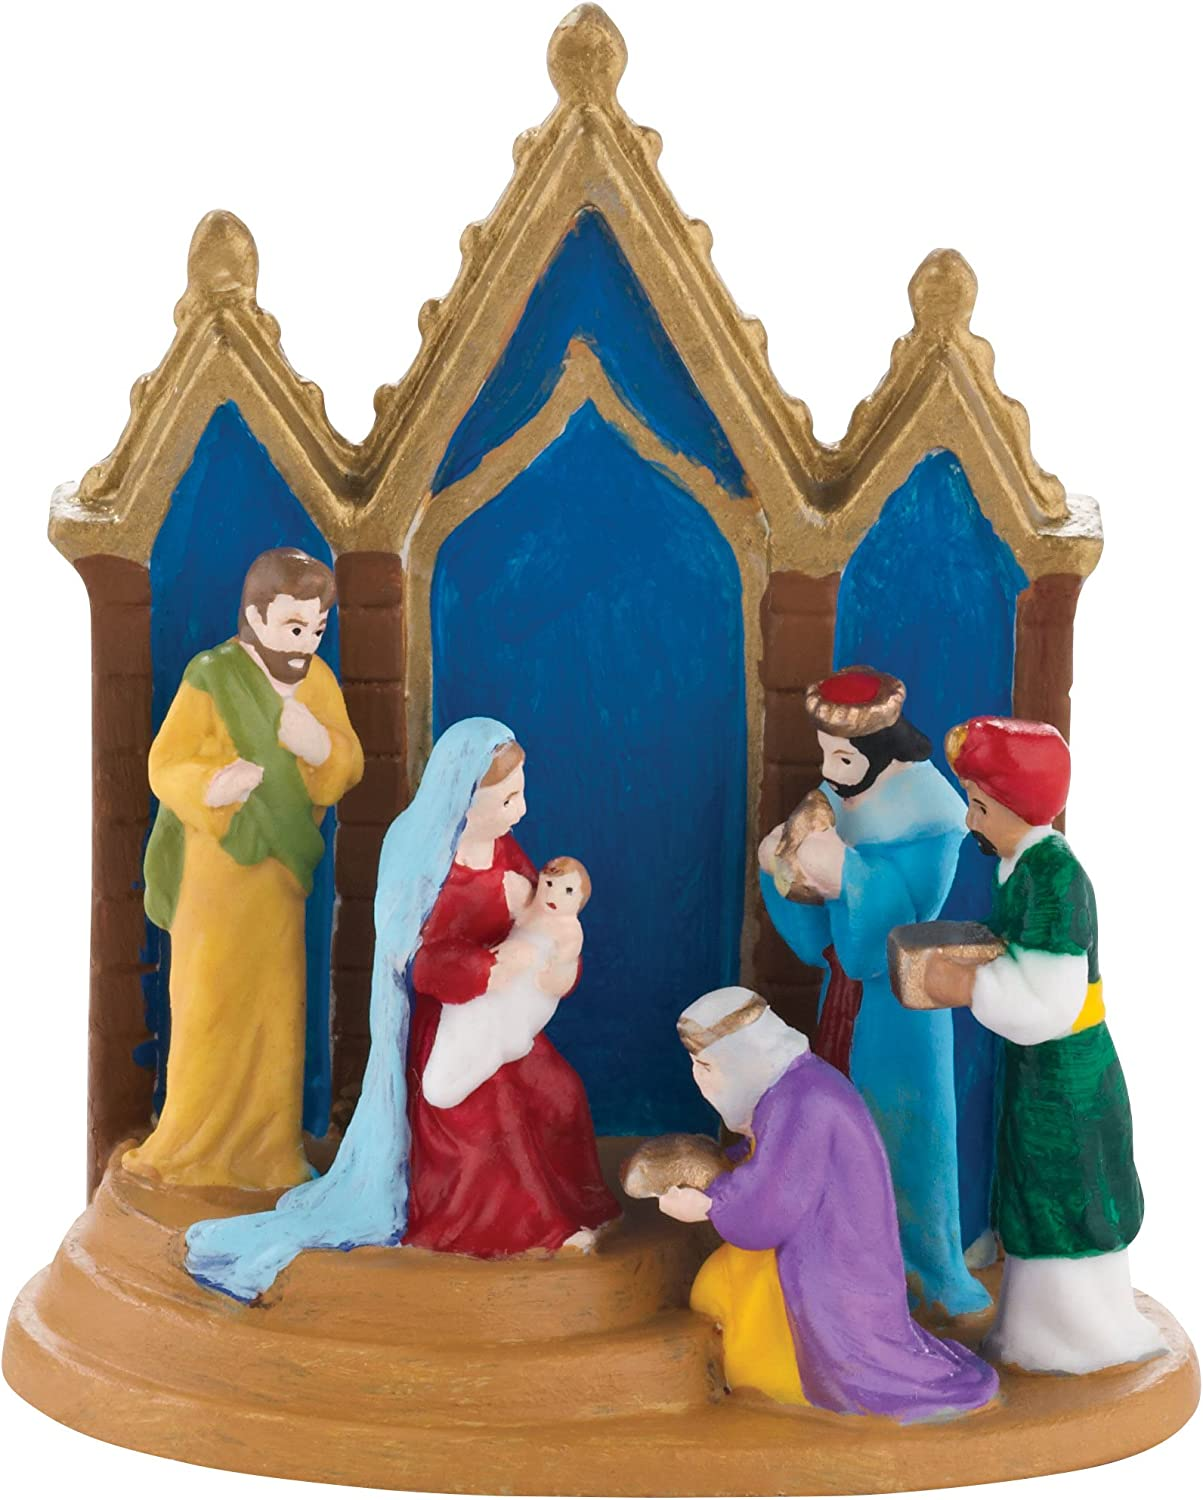 Department 56 Christmas in the City Village Nativity Accessory Figurine, 1.42 inch